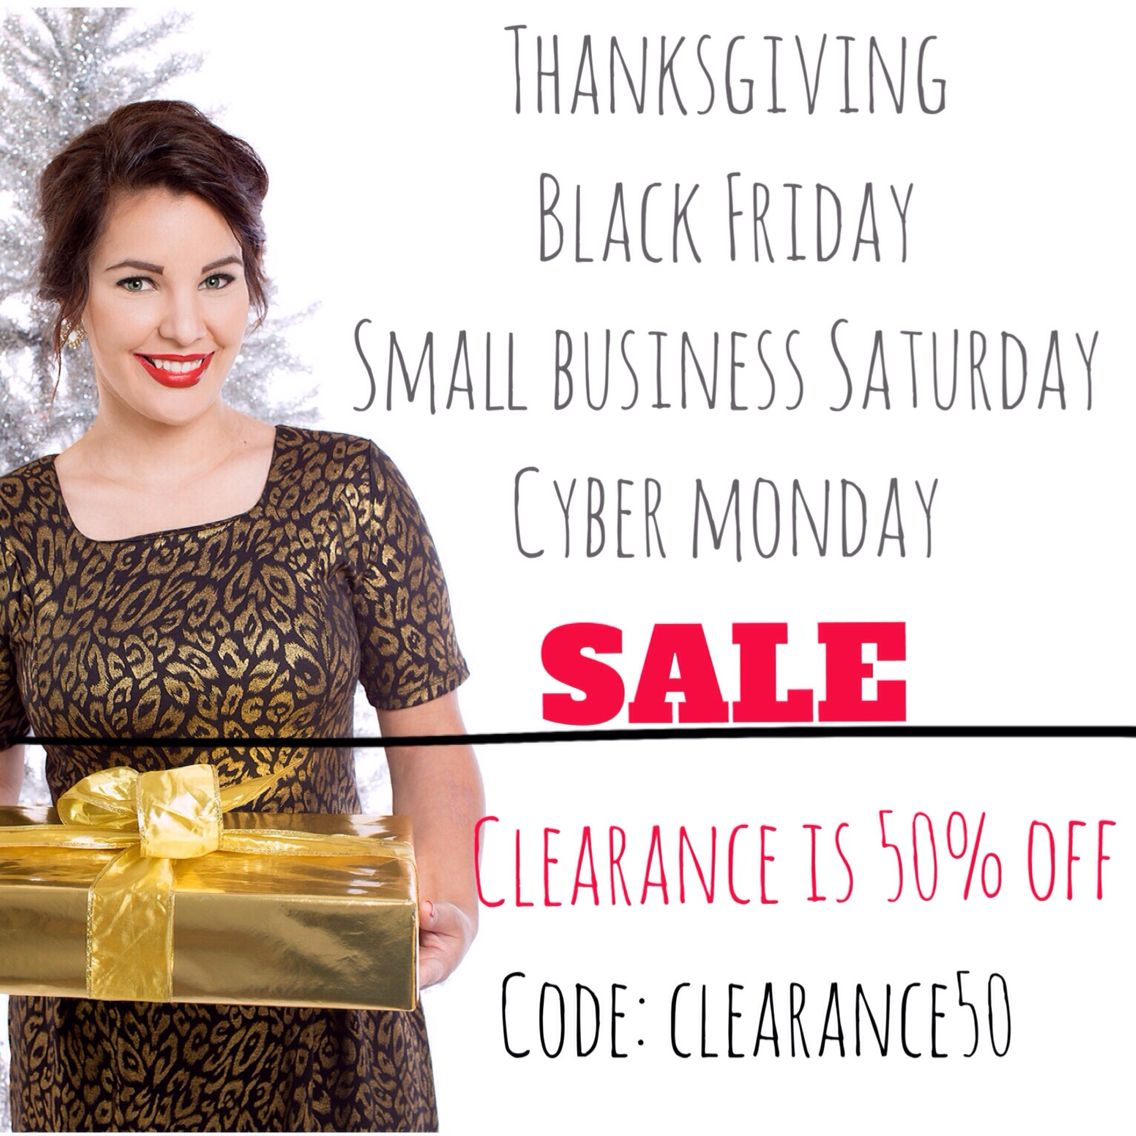 Thanksgiving, Black Friday, Small Business Saturday, and Cyber Monday SALE!